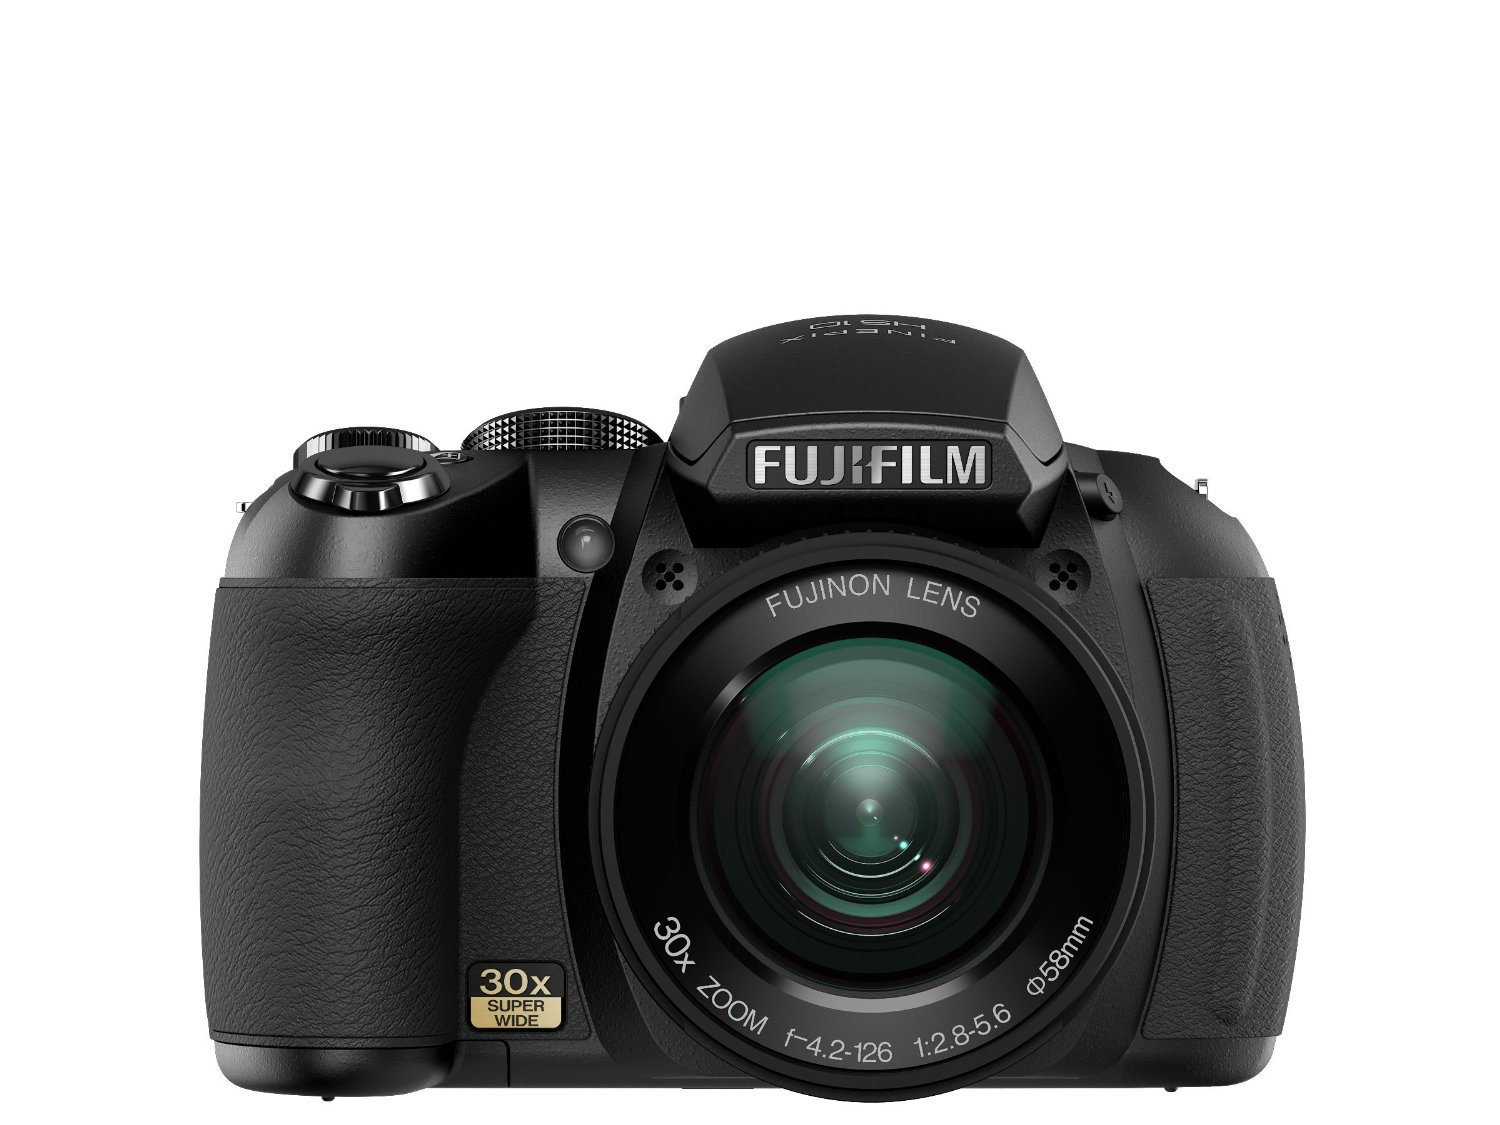 cheap finepix hs10 find finepix hs10 deals on line at alibaba com rh guide alibaba com